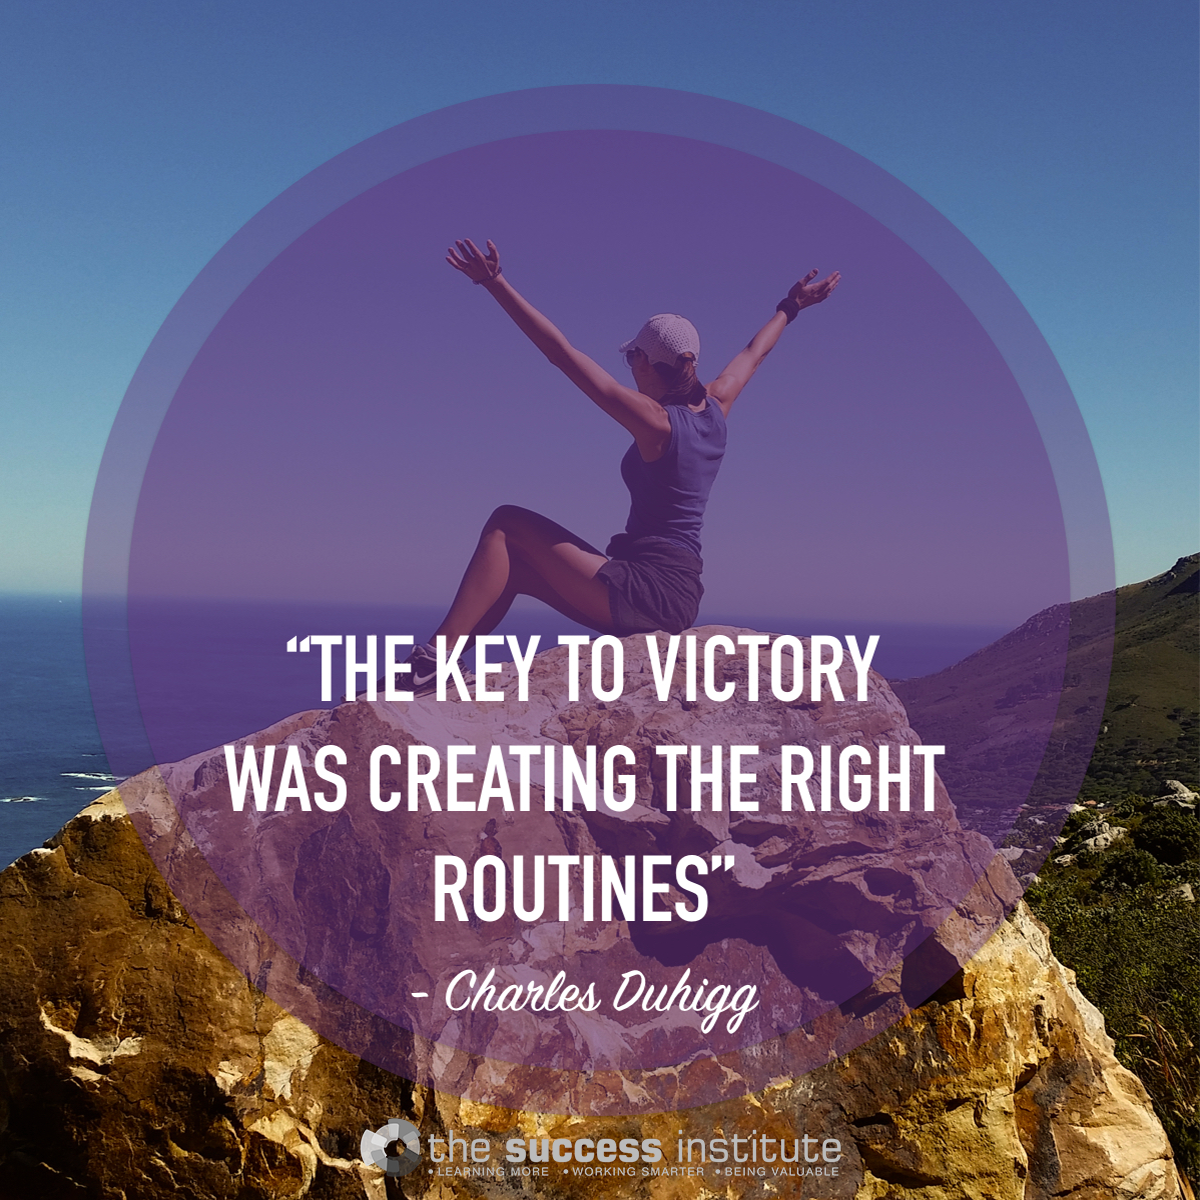 The key to victory was creating the right routines.